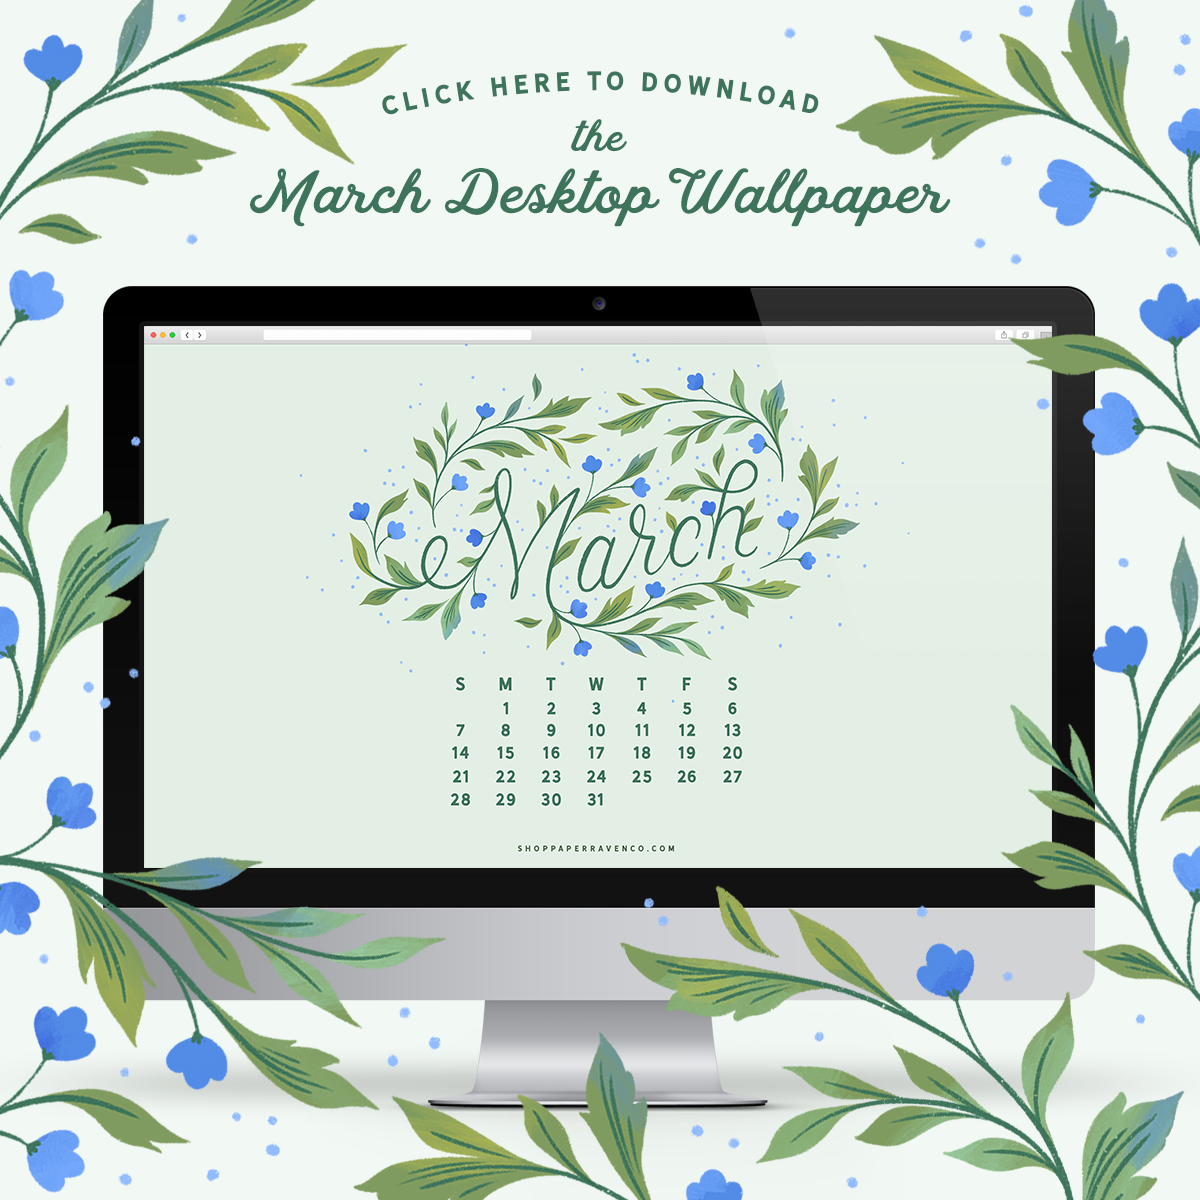 March 2021 Illustrated Desktop Wallpaper by Paper Raven Co. #dressyourtech #desktopwallpaper #desktopdownload